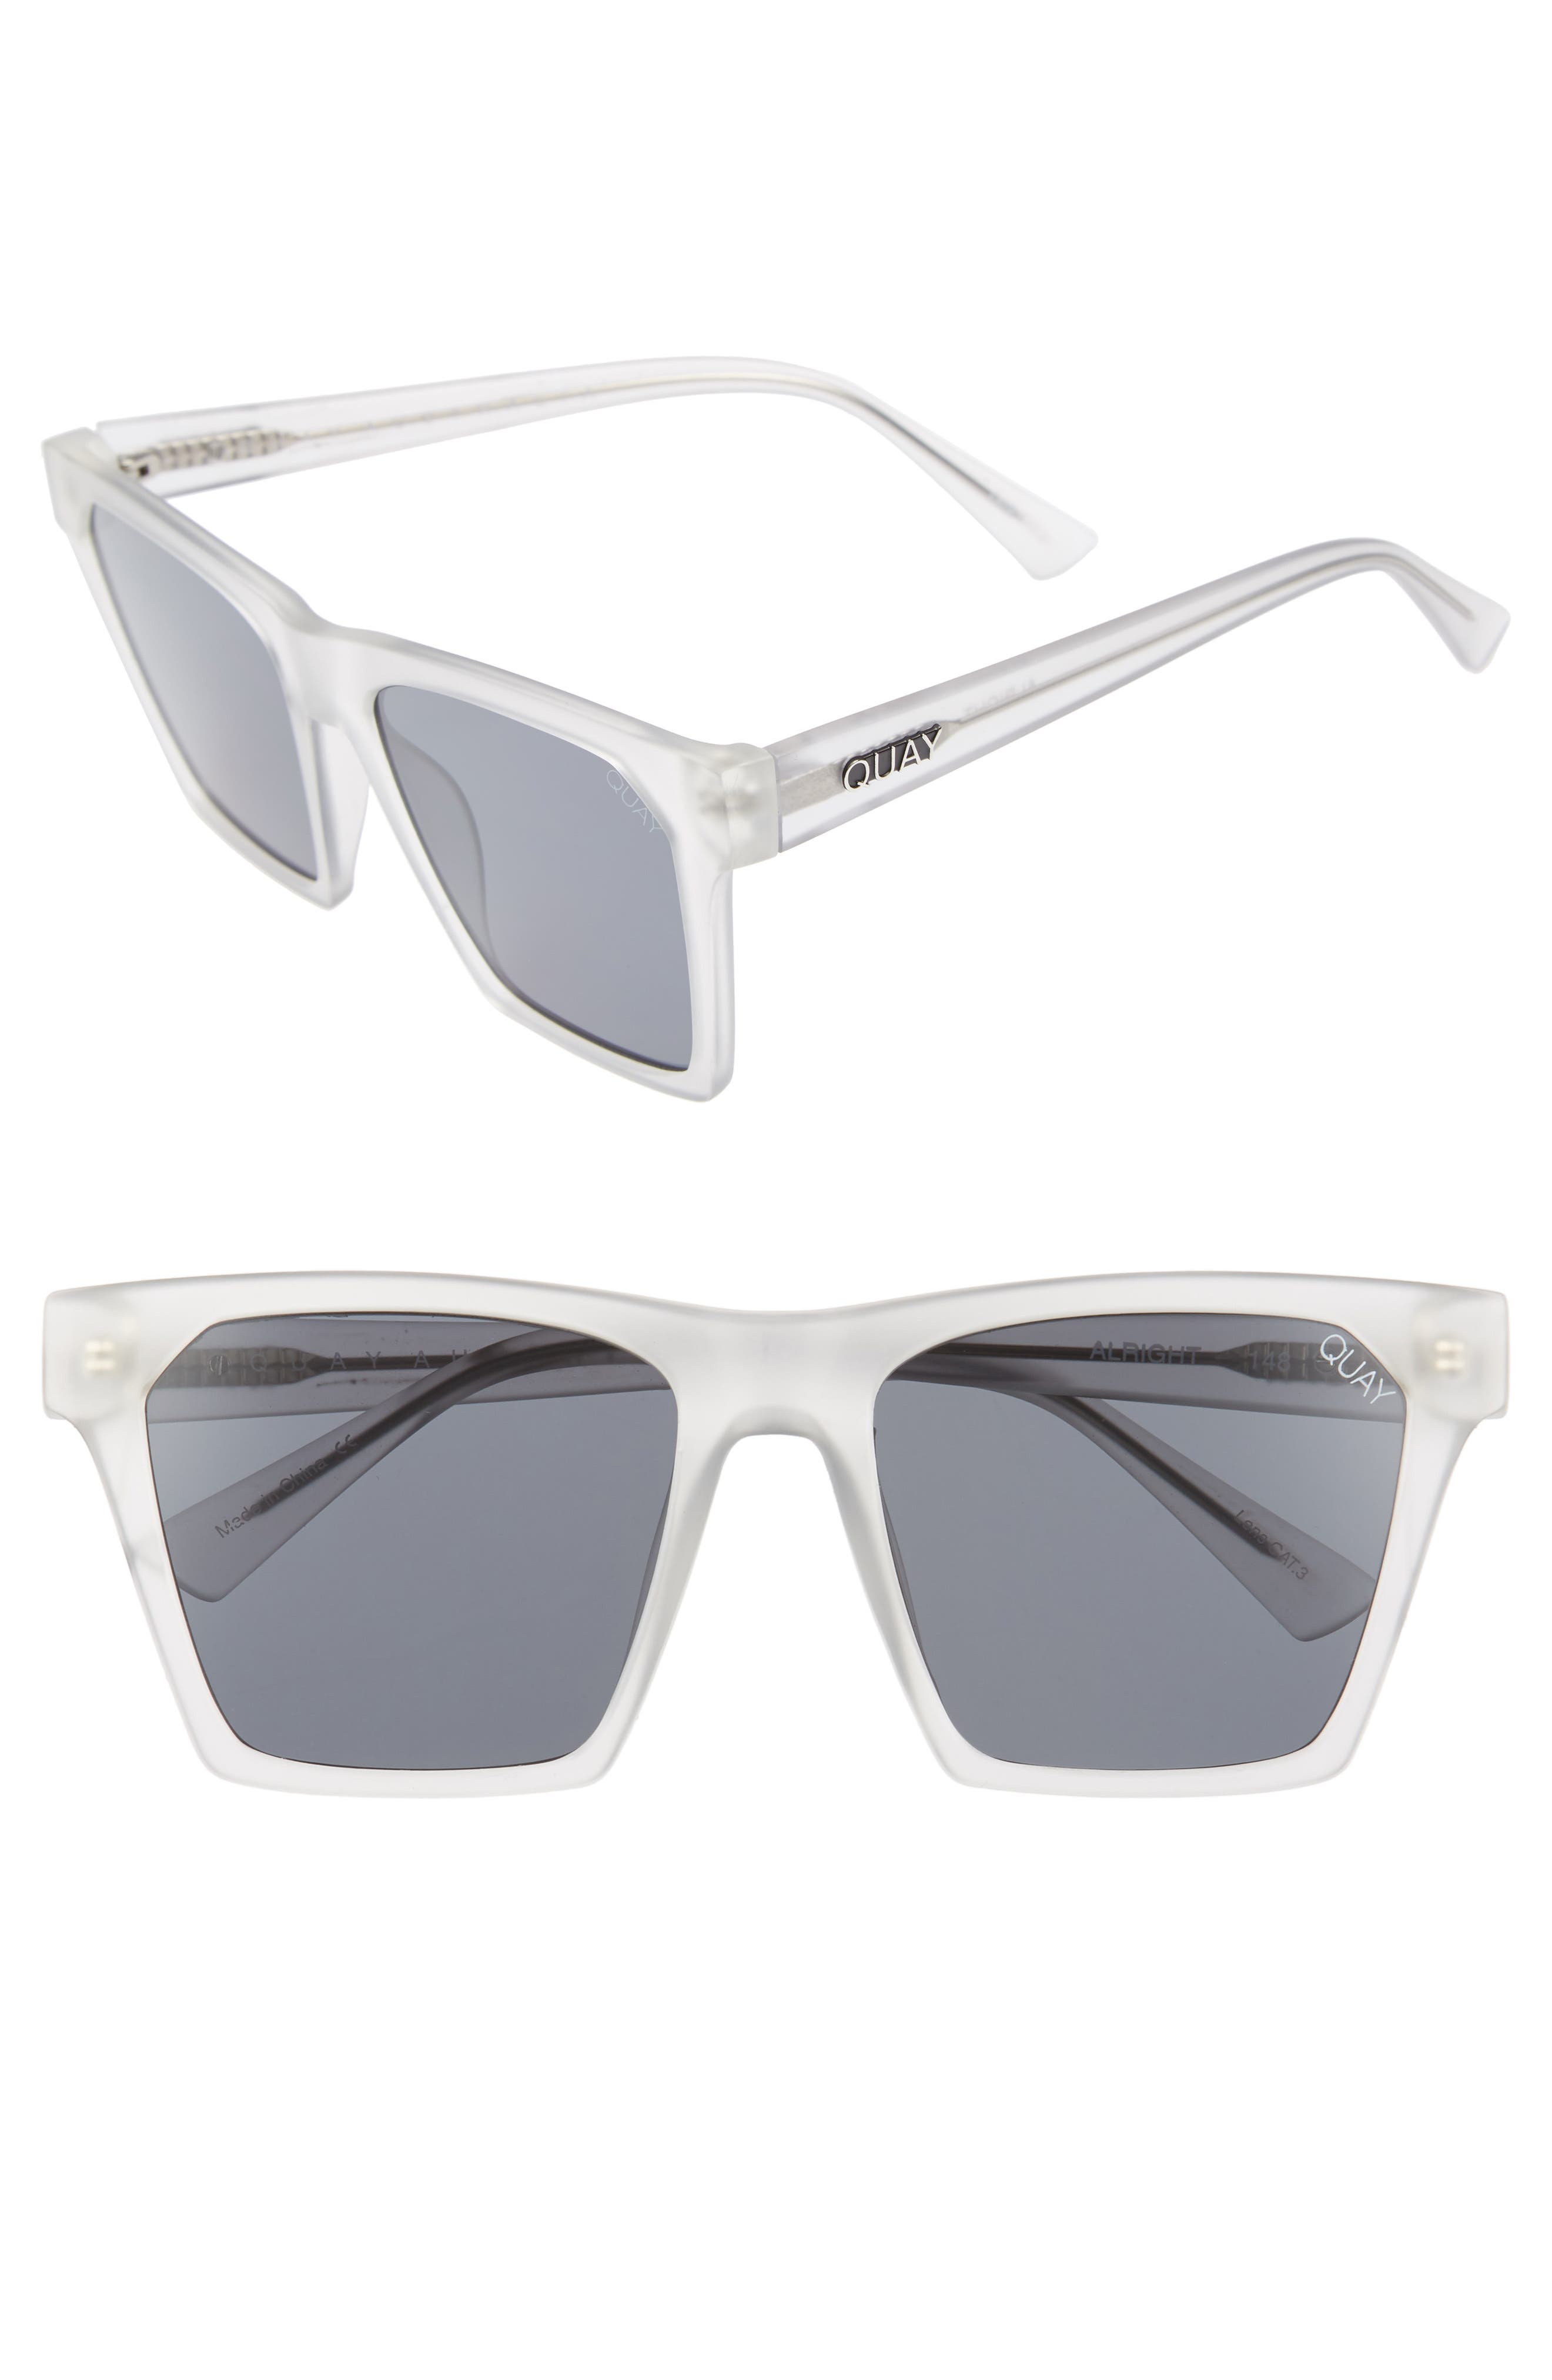 x Missguided Alright 55mm Square Sunglasses,                         Main,                         color, White/ Smoke